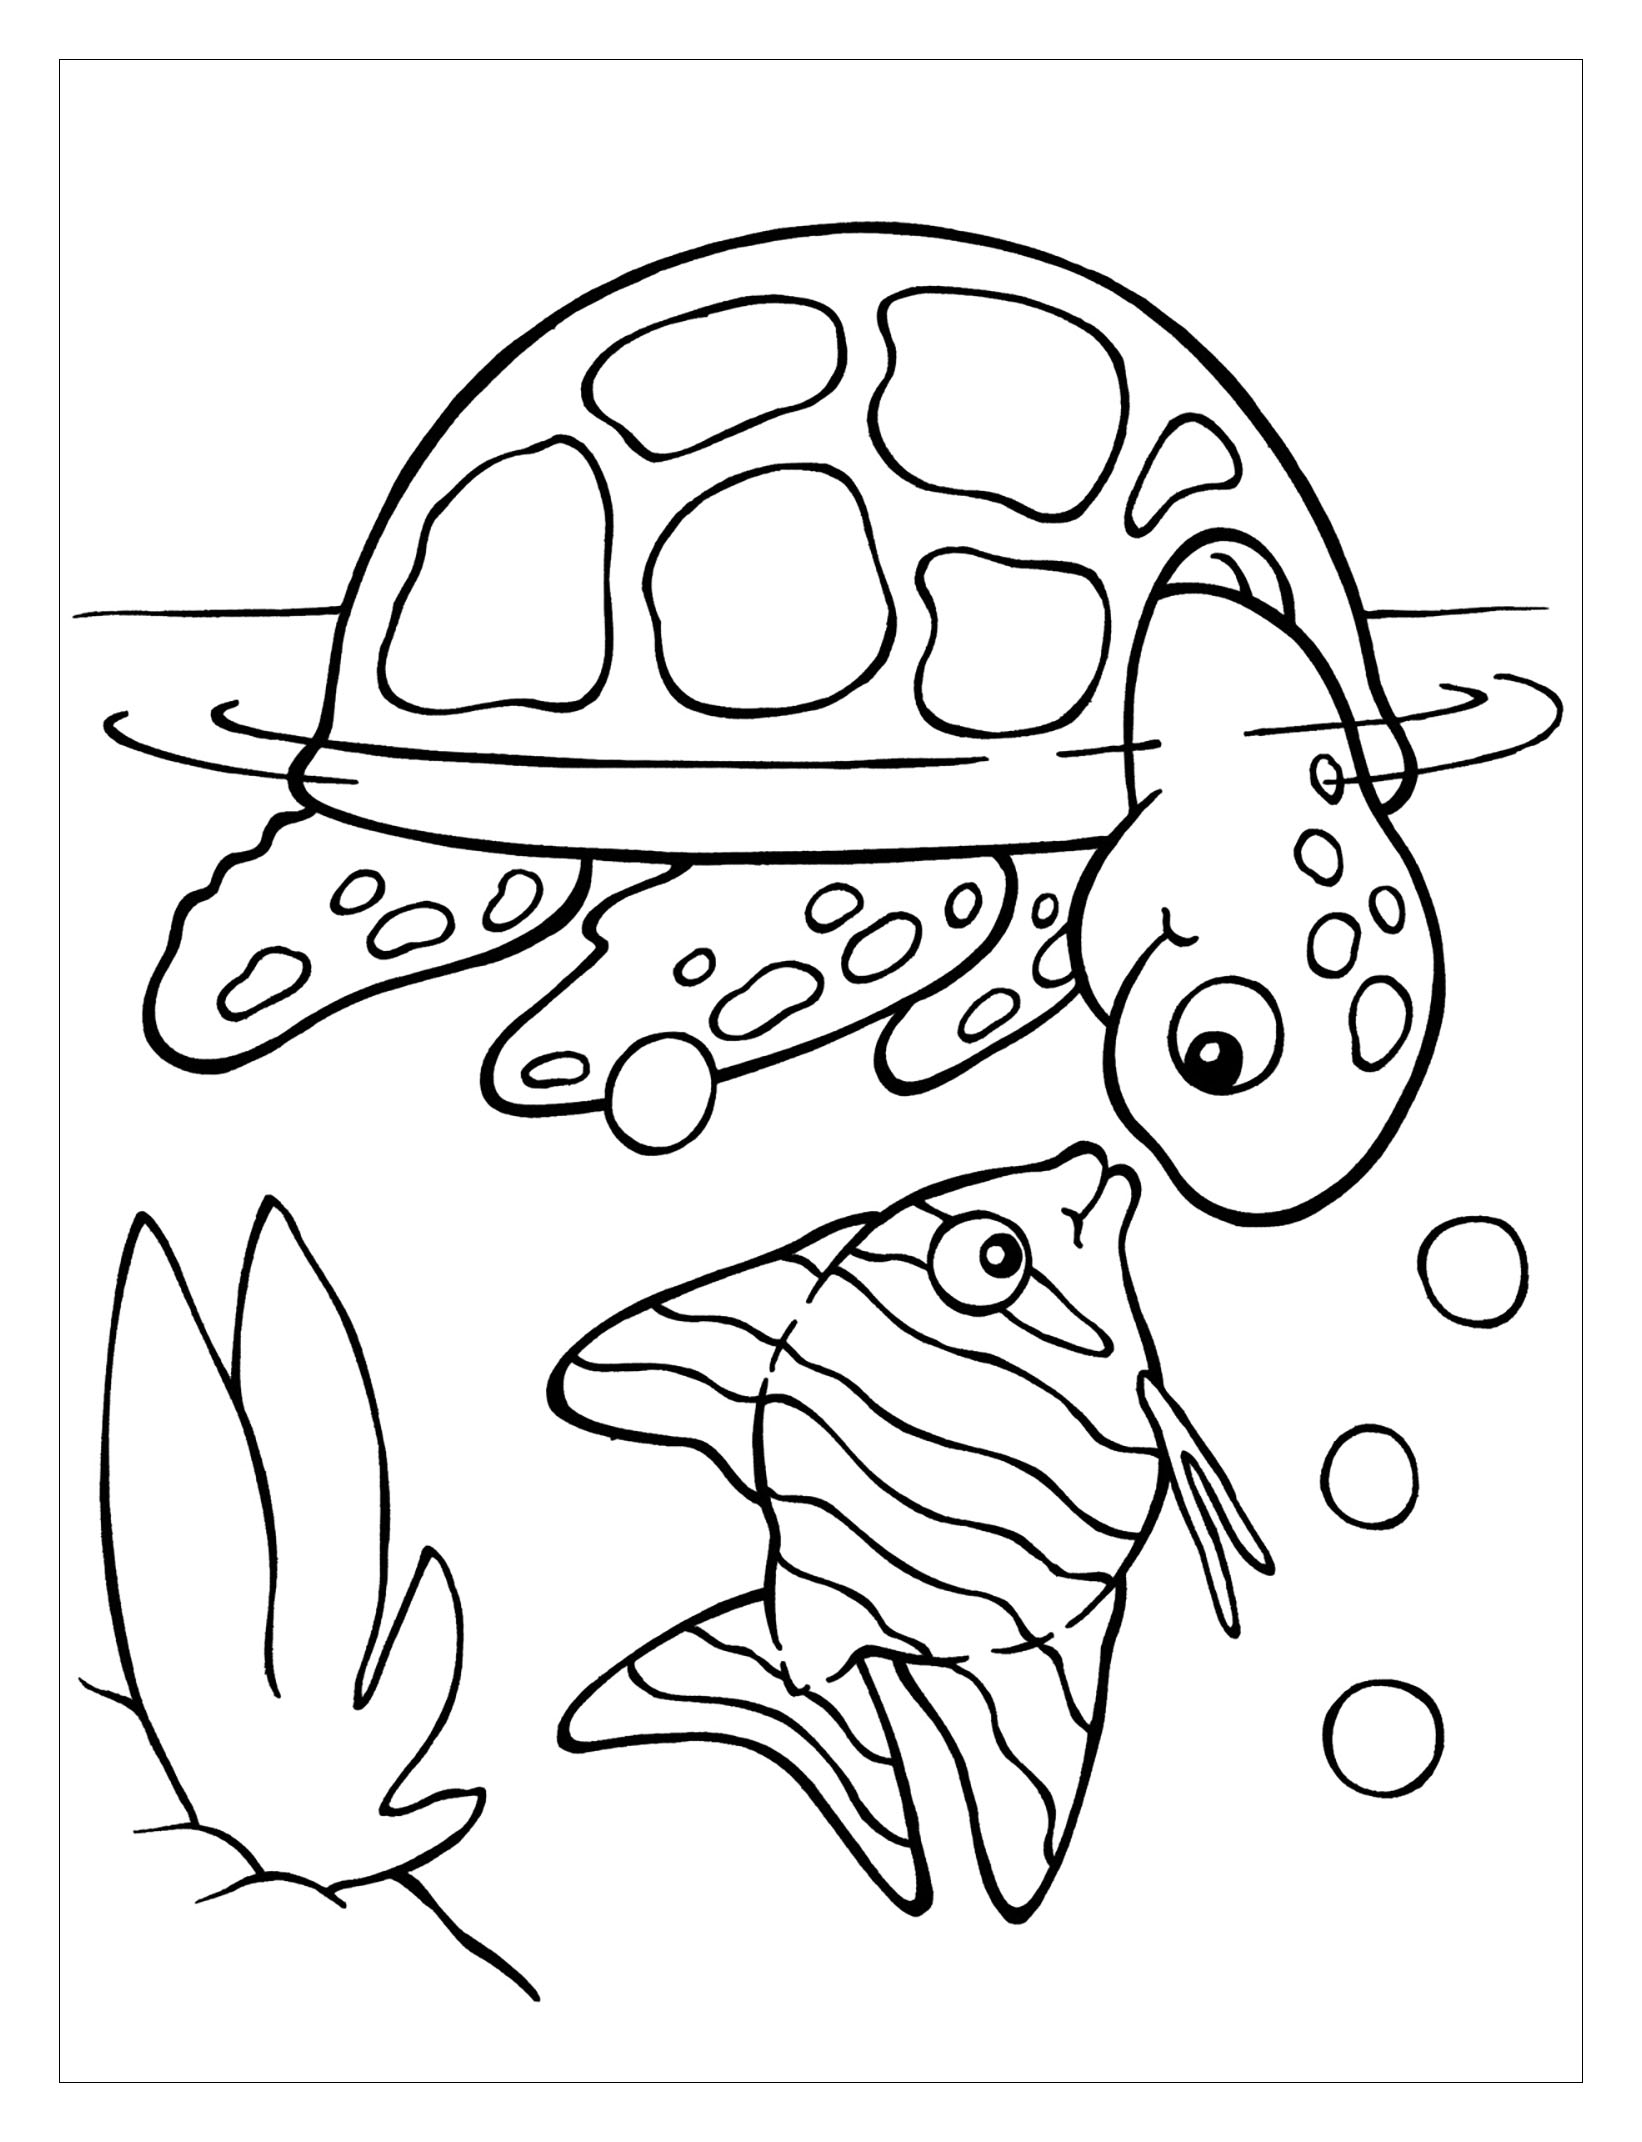 tortoise colouring pictures print download turtle coloring pages as the tortoise colouring pictures